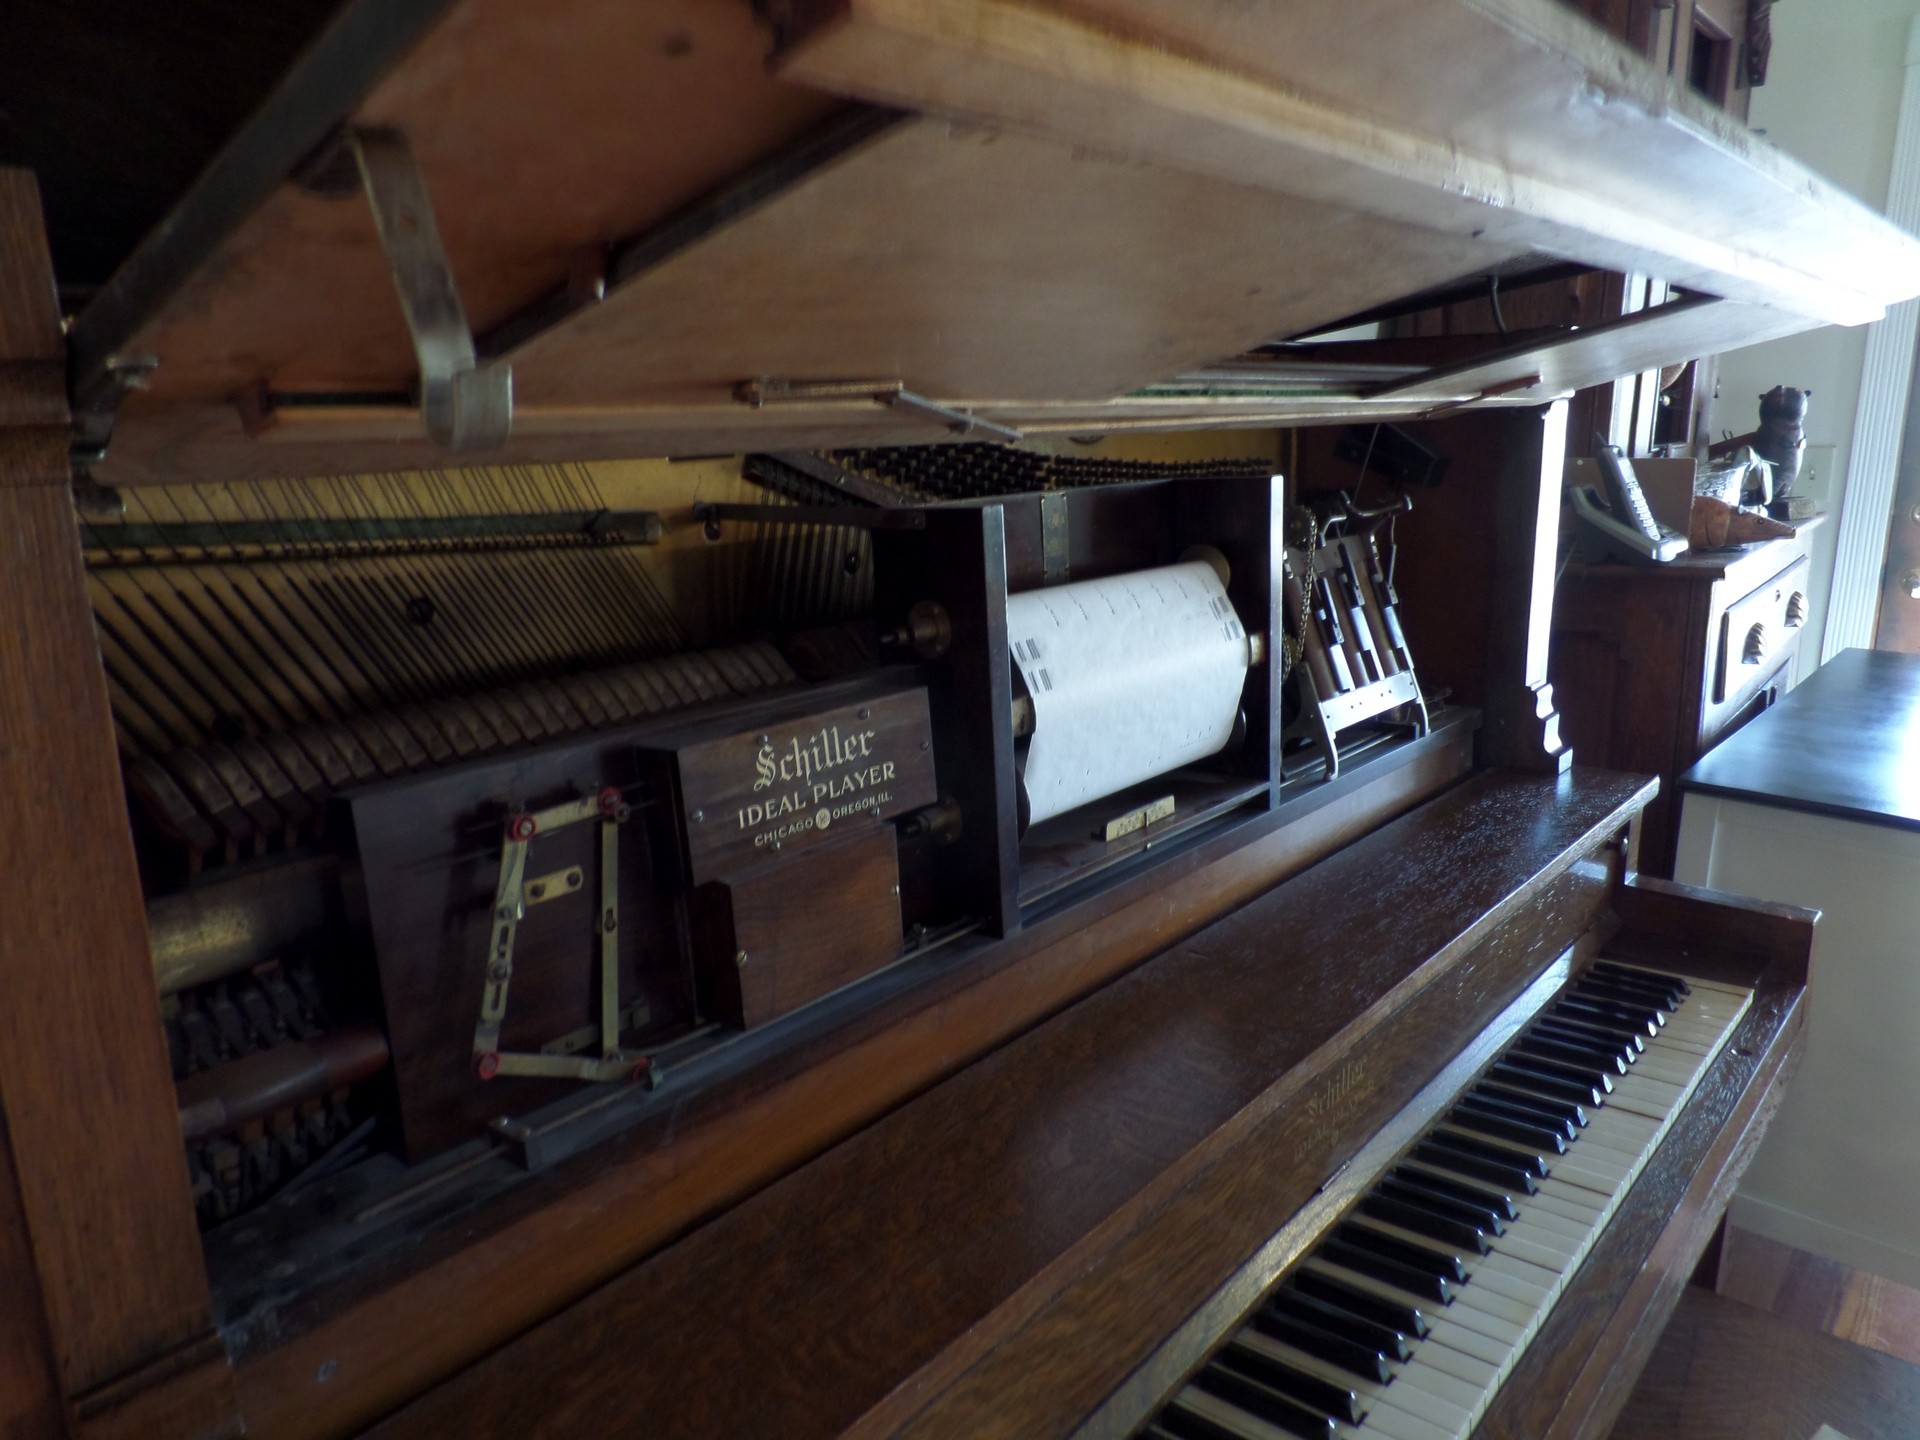 Inside of player piano